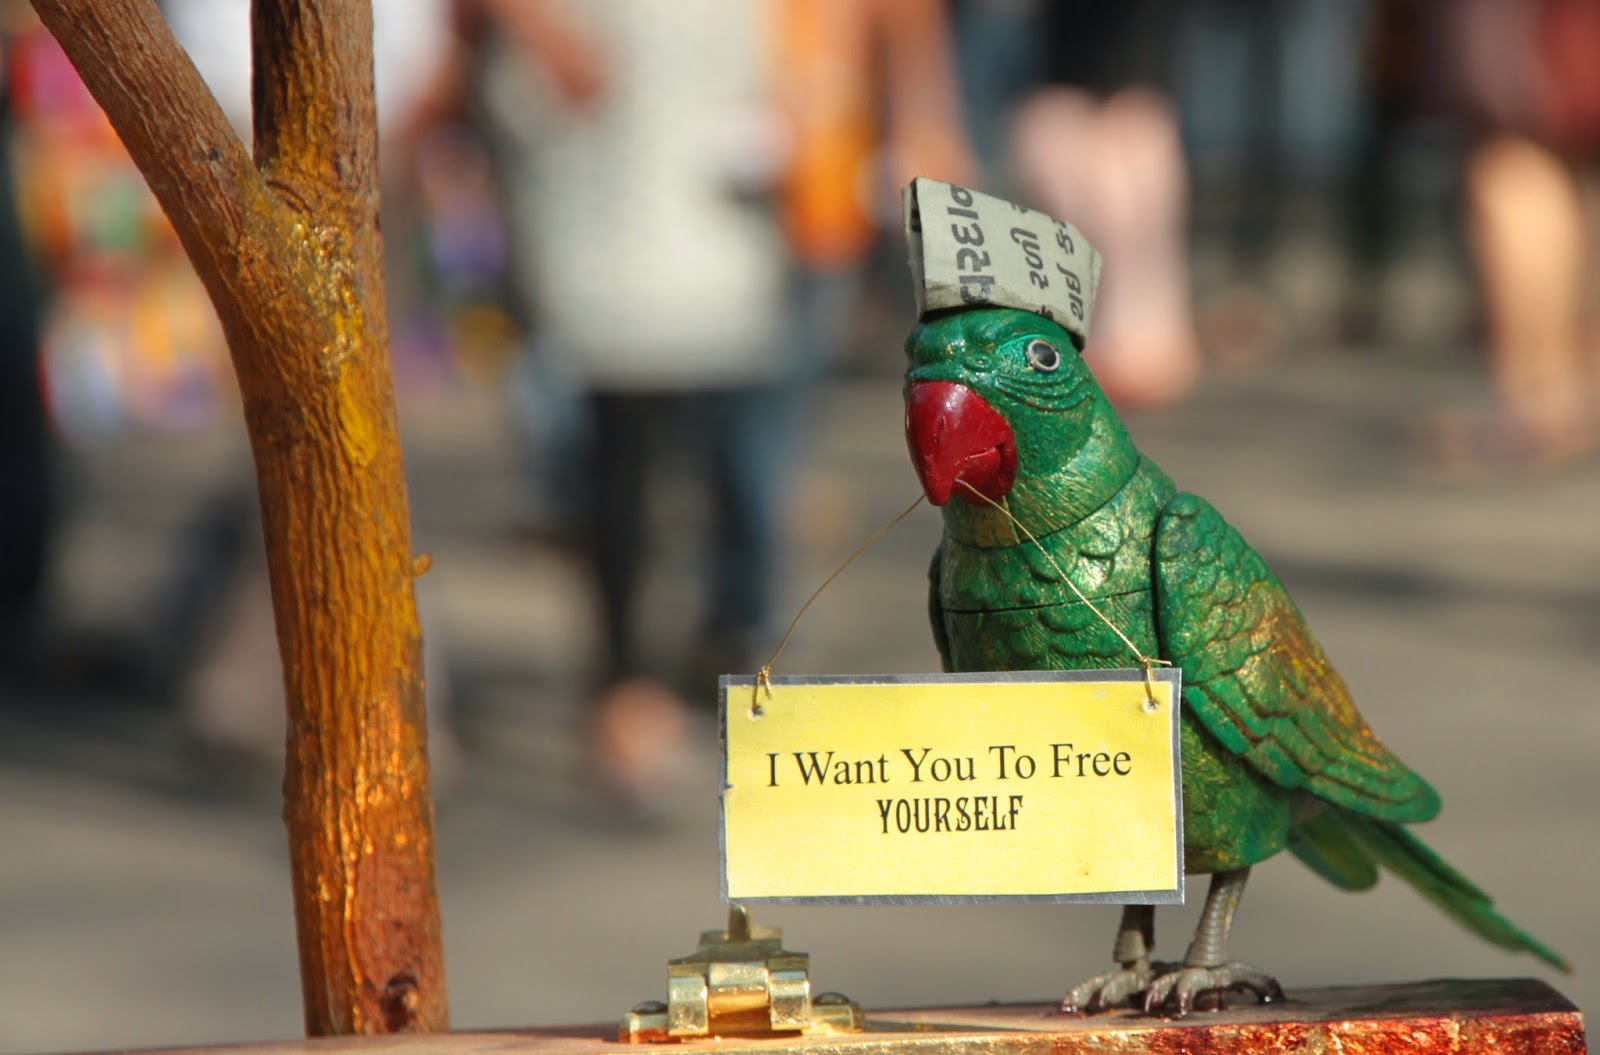 metal, bird, sign, political, india, kala ghoda, mumbai